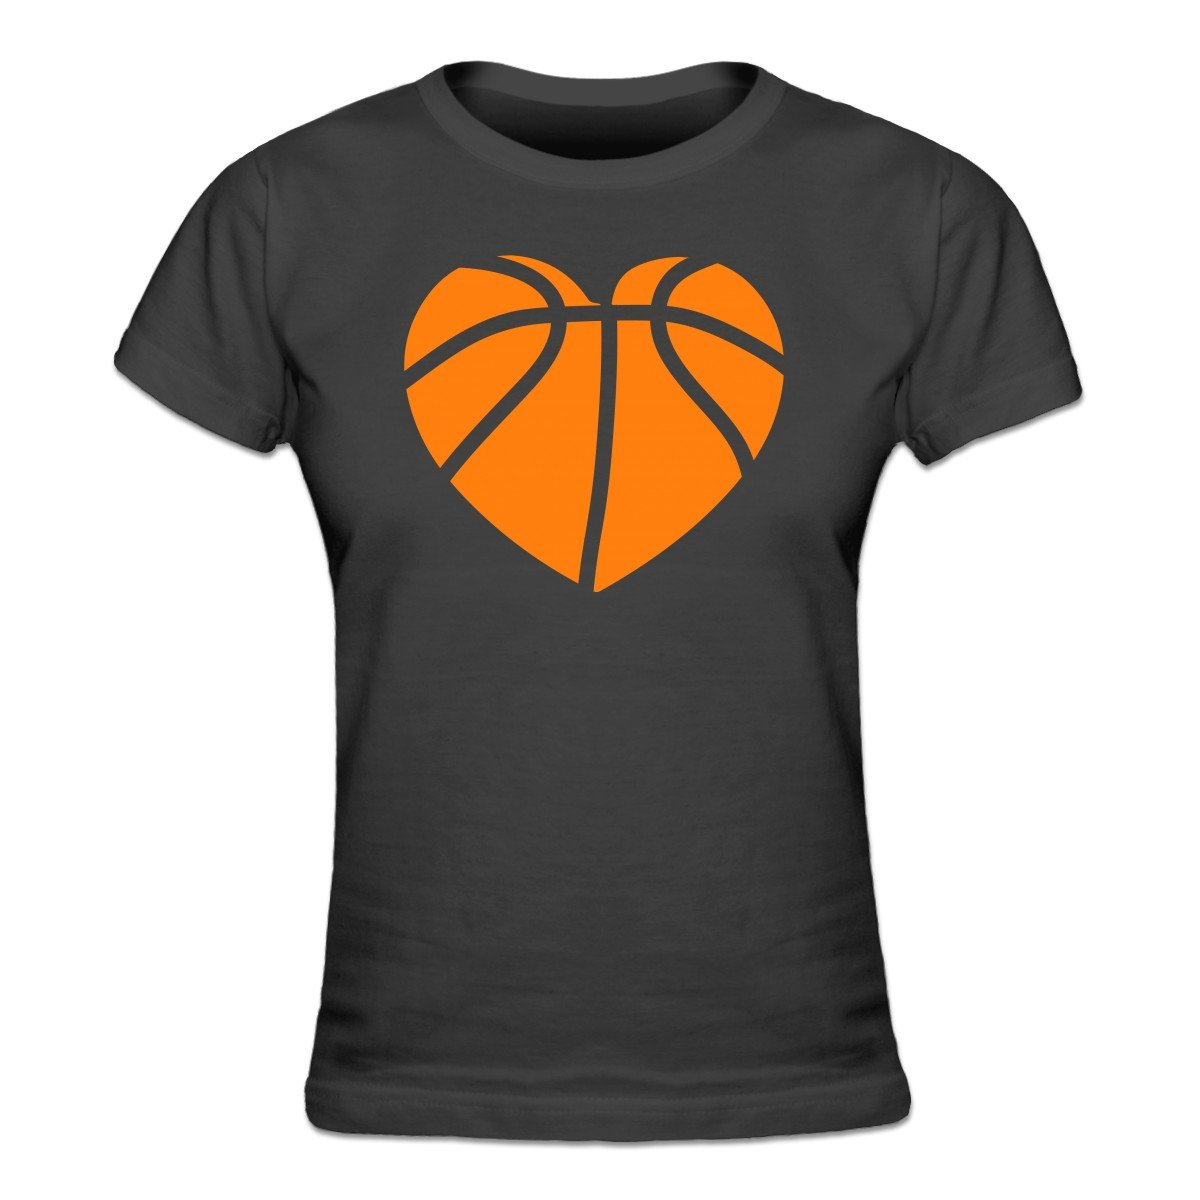 Basketball heart womens t shirt by shirtcity amazon clothing sciox Gallery